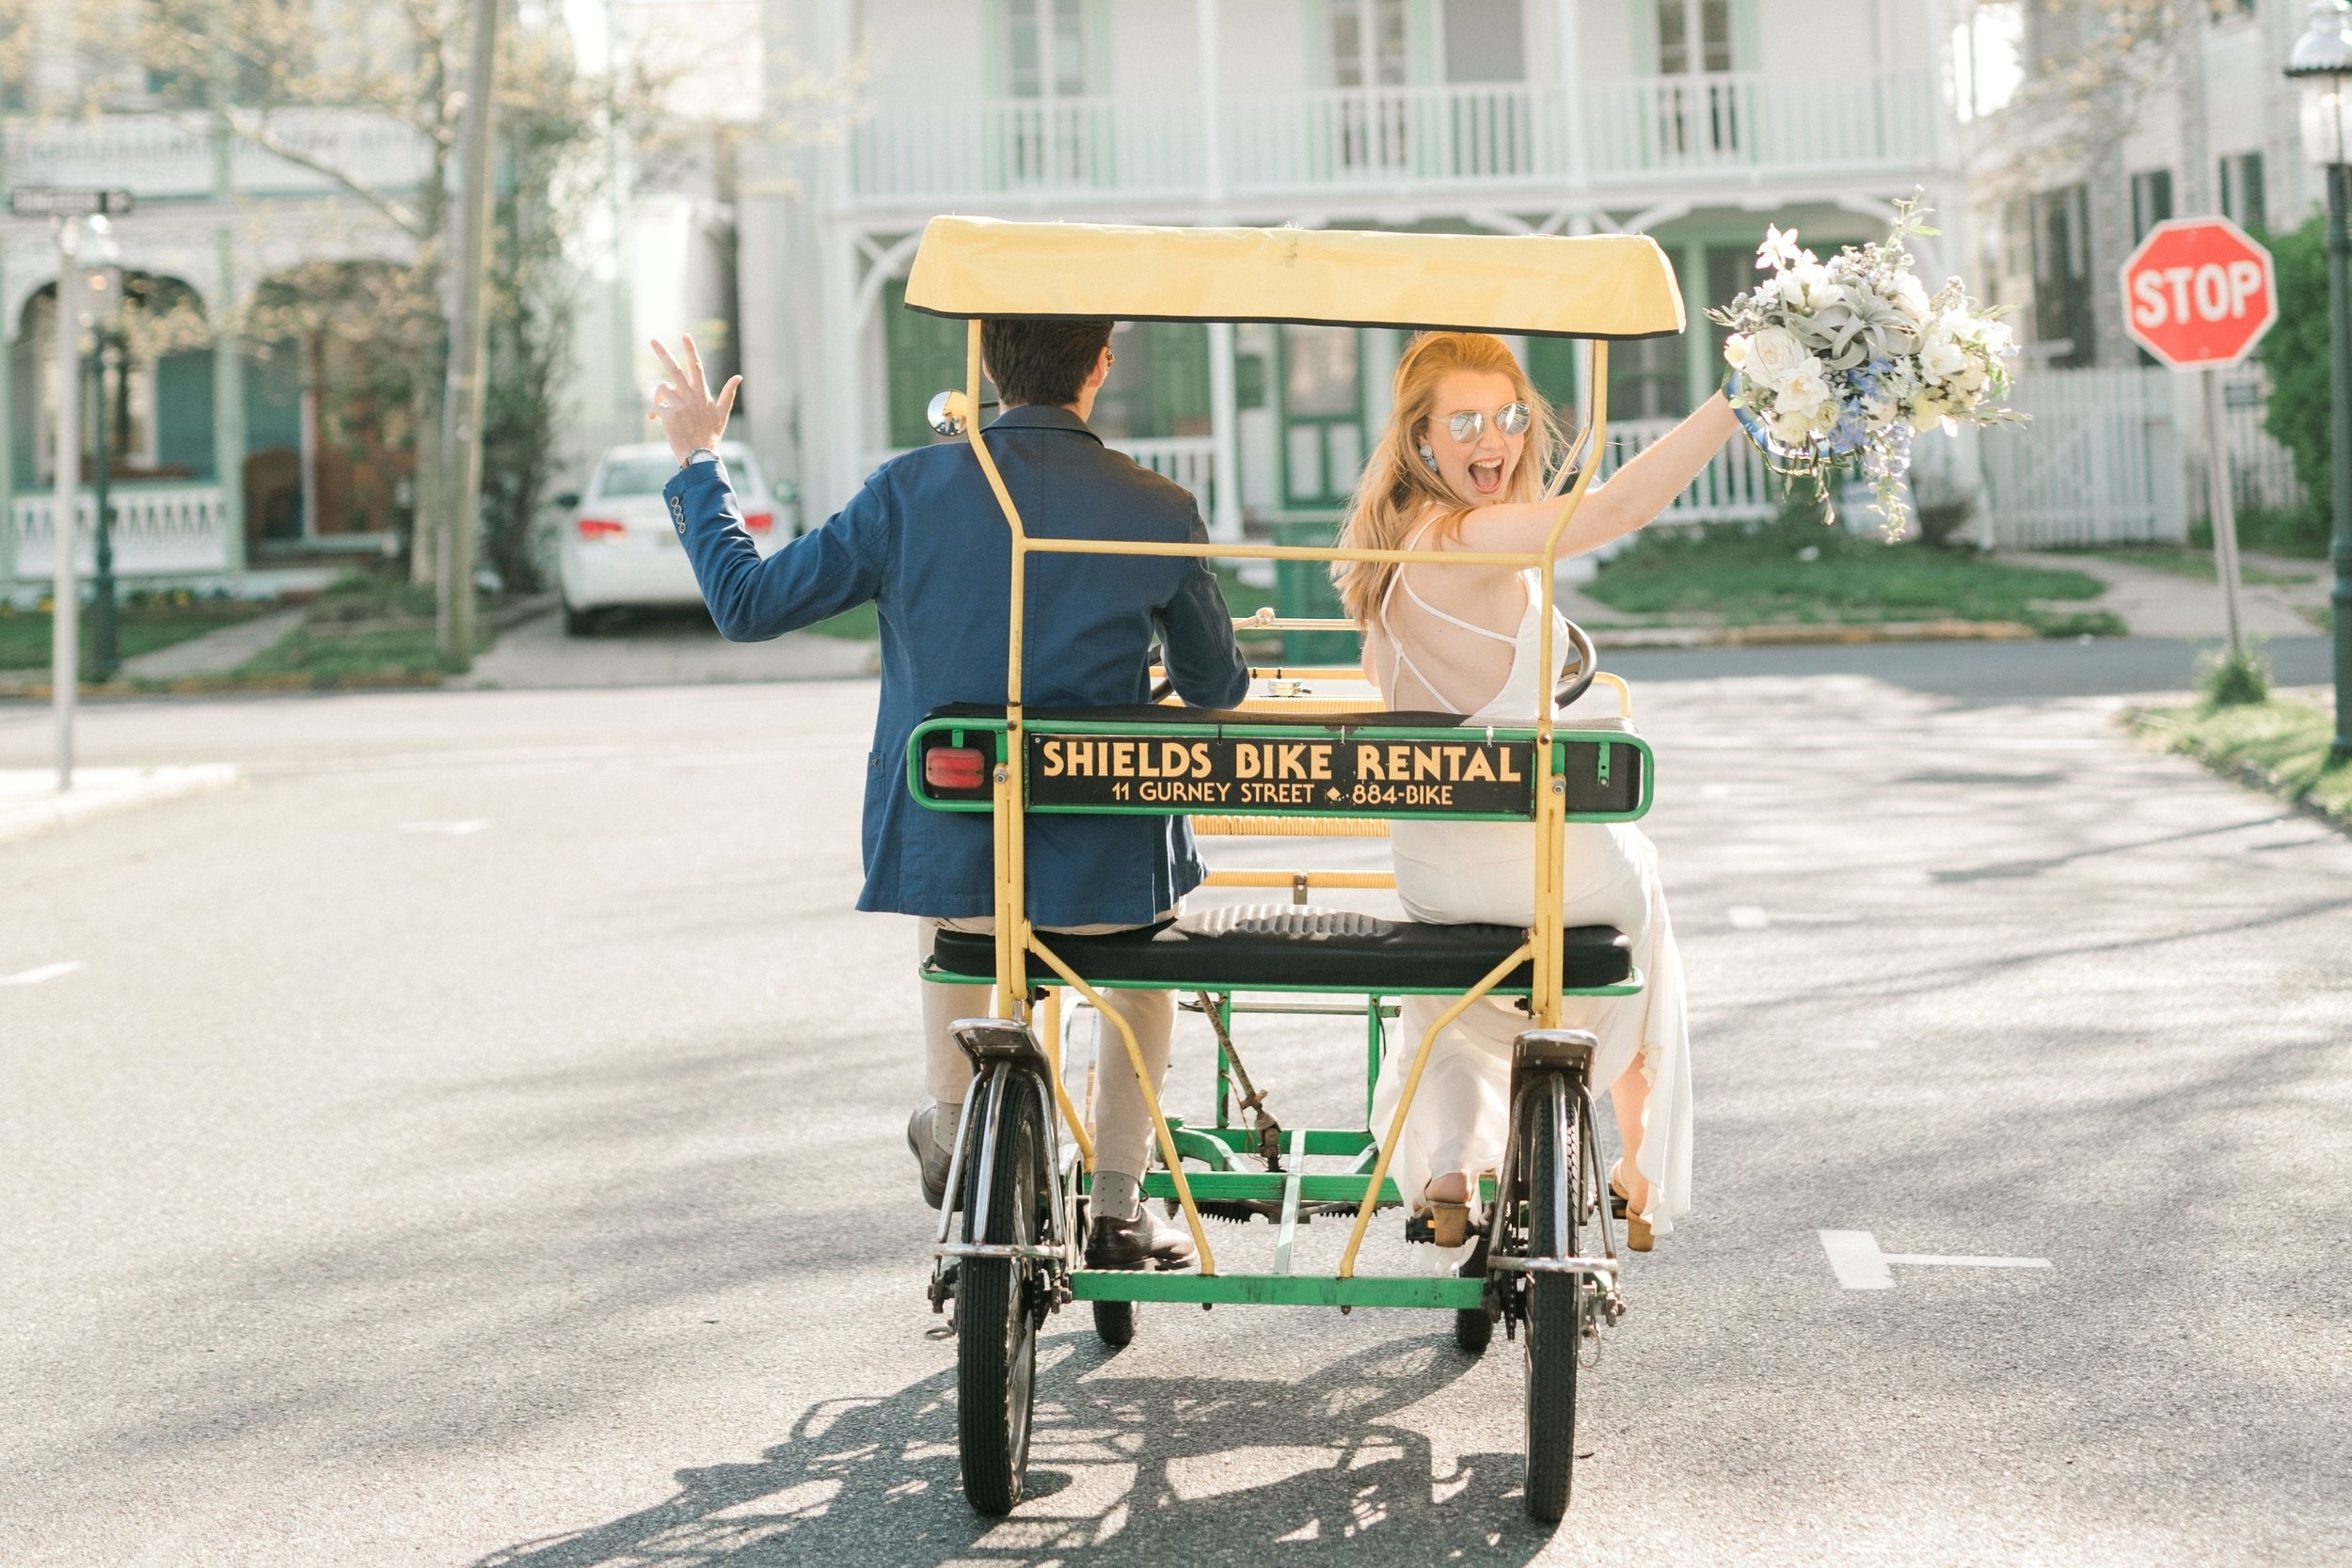 This Wedding Shoot Makes Us Want To Get Married In Cape May - Featured On Philadelphia Wedding | July 2, 2018